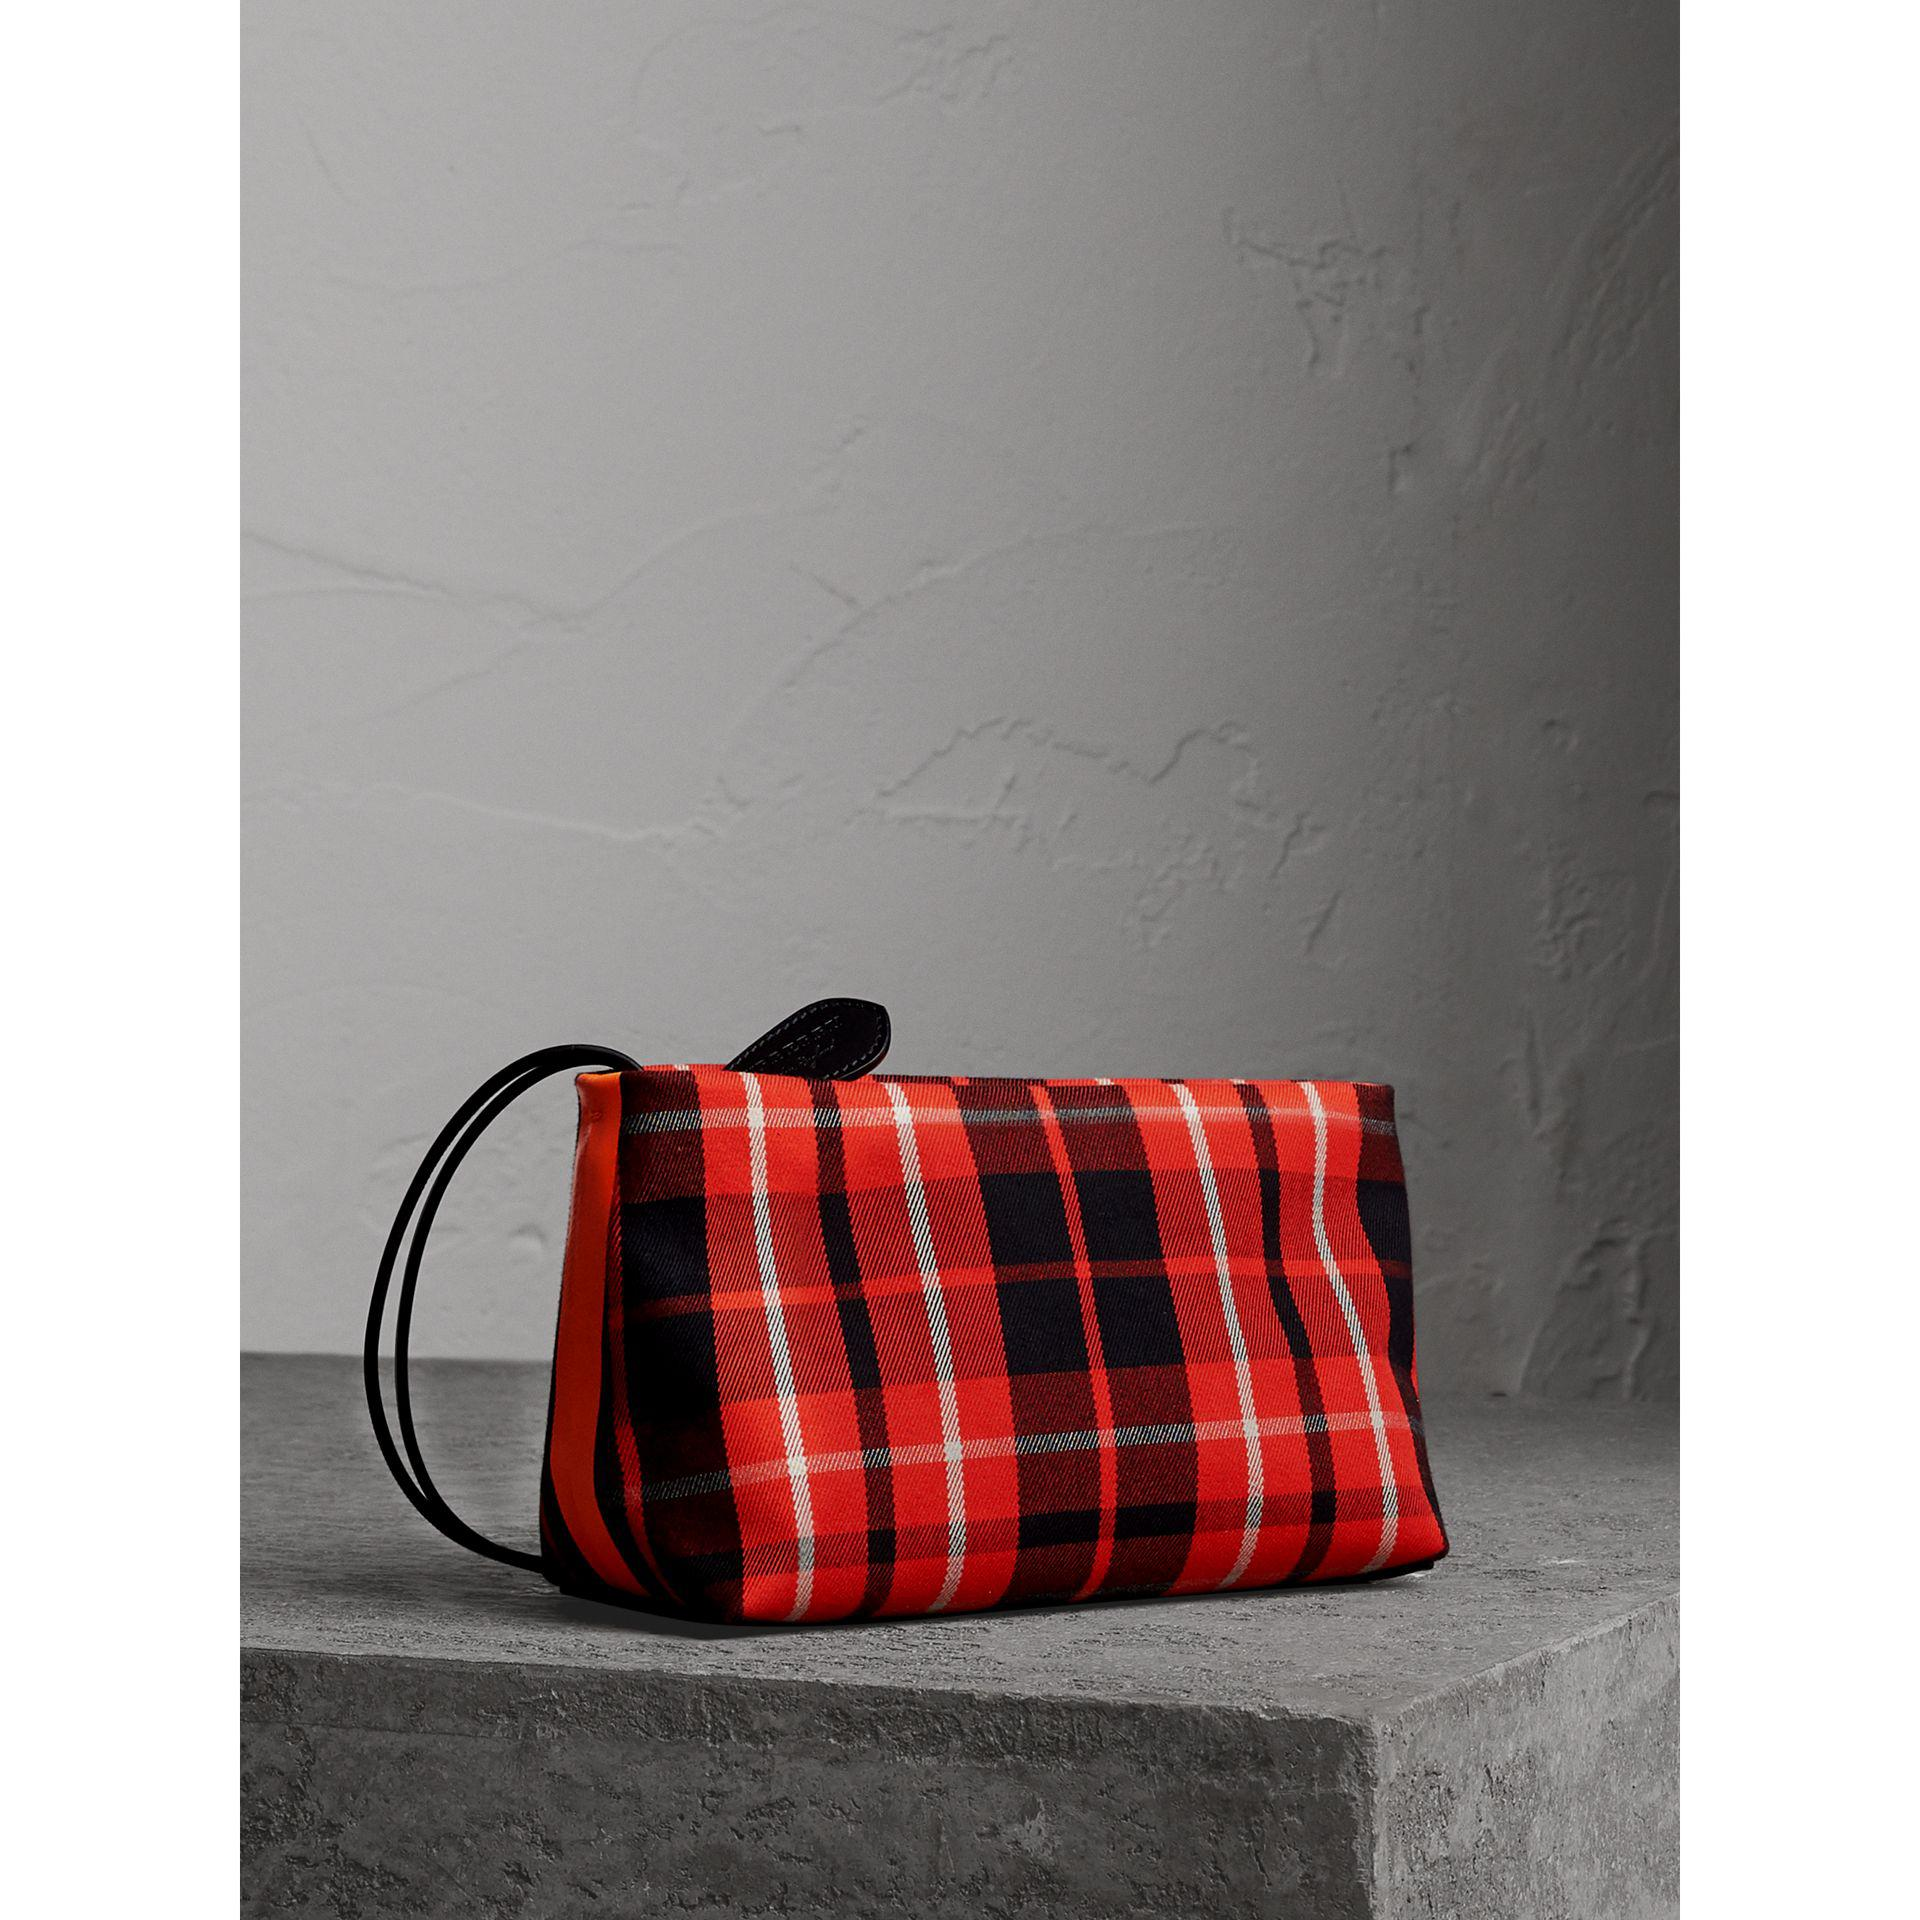 Tartan Cotton Clutch Bag in Ink Blue and Yellow Cotton Burberry